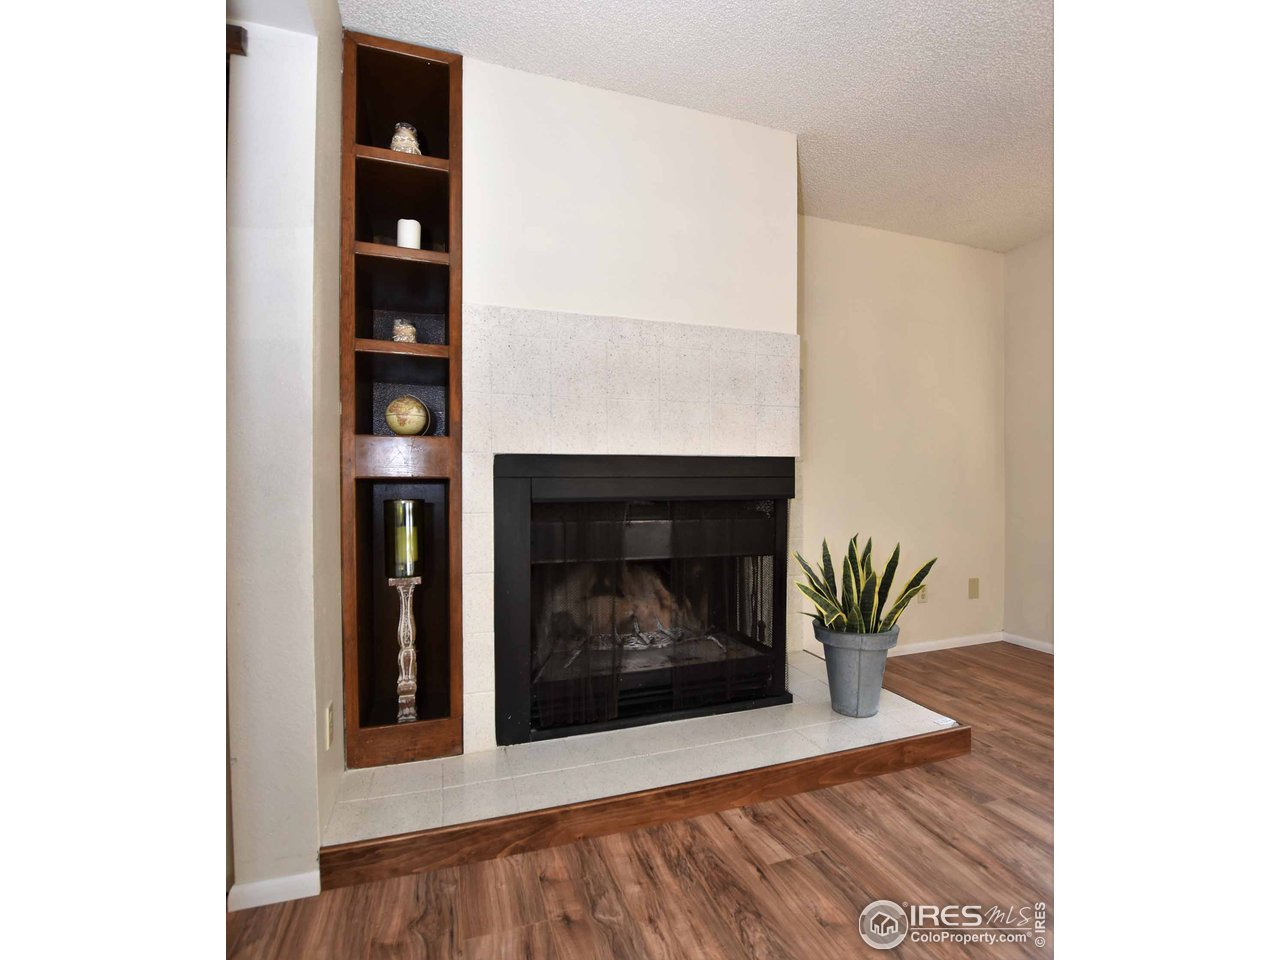 Built-ins by fireplace